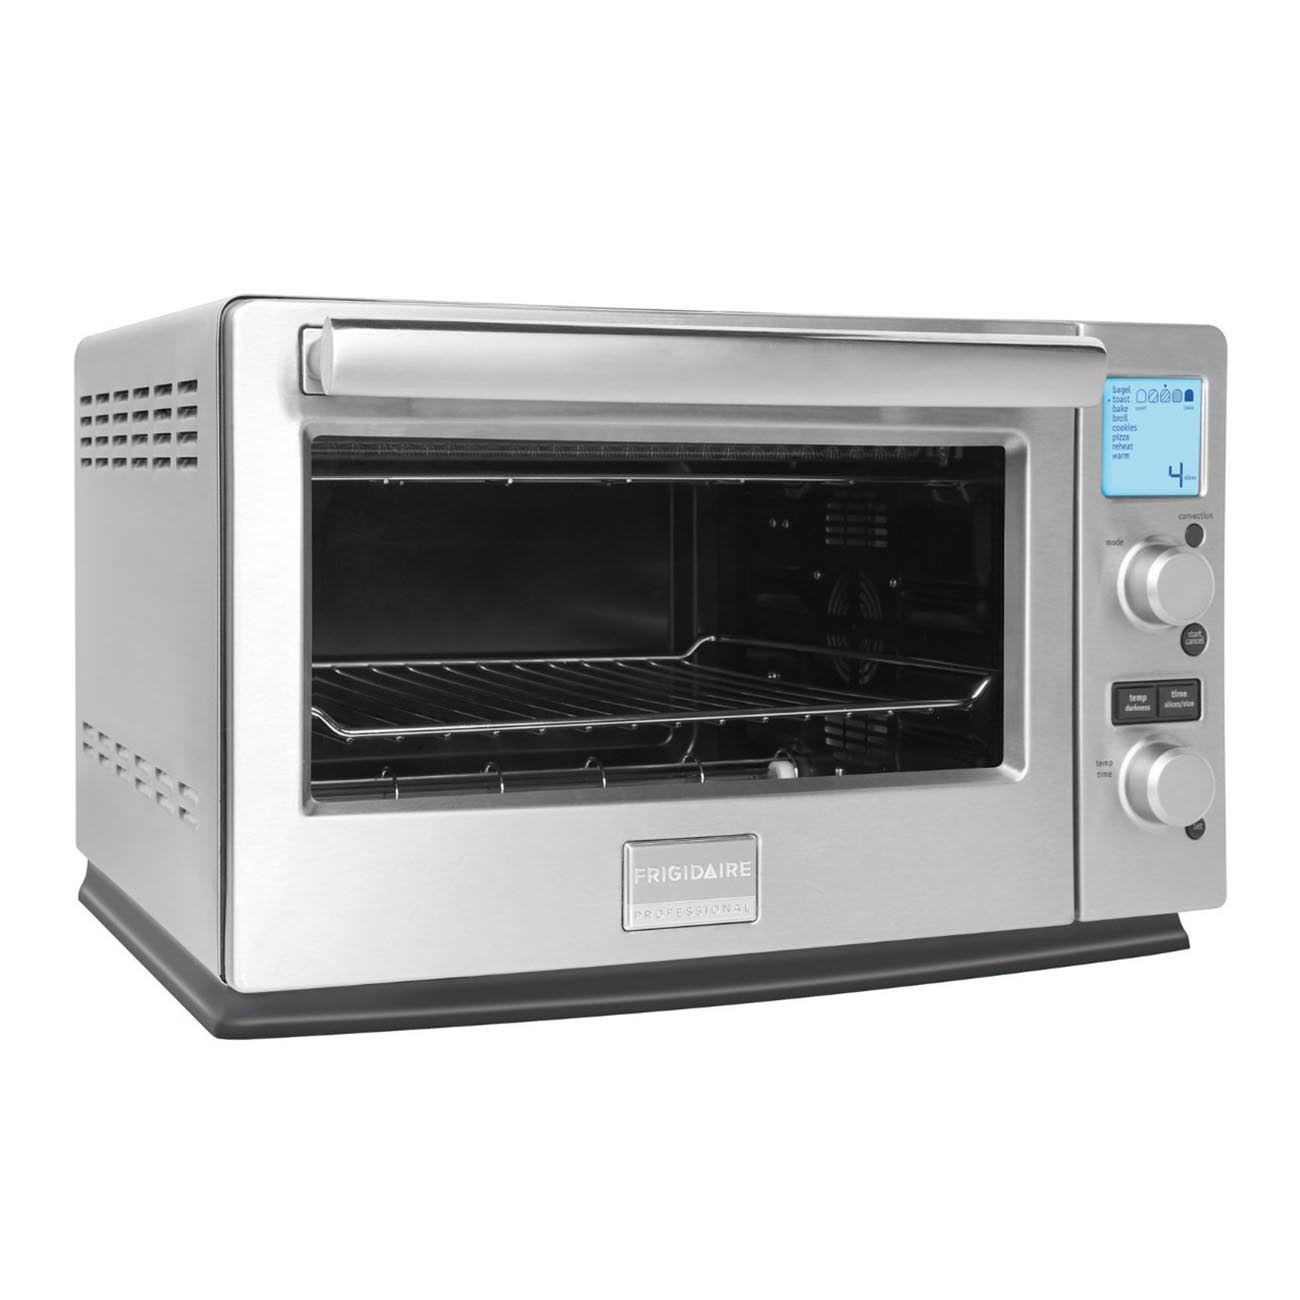 Frigidaire Professional 6-Slice Infrared Convection Toaster Oven, Stainless Steel